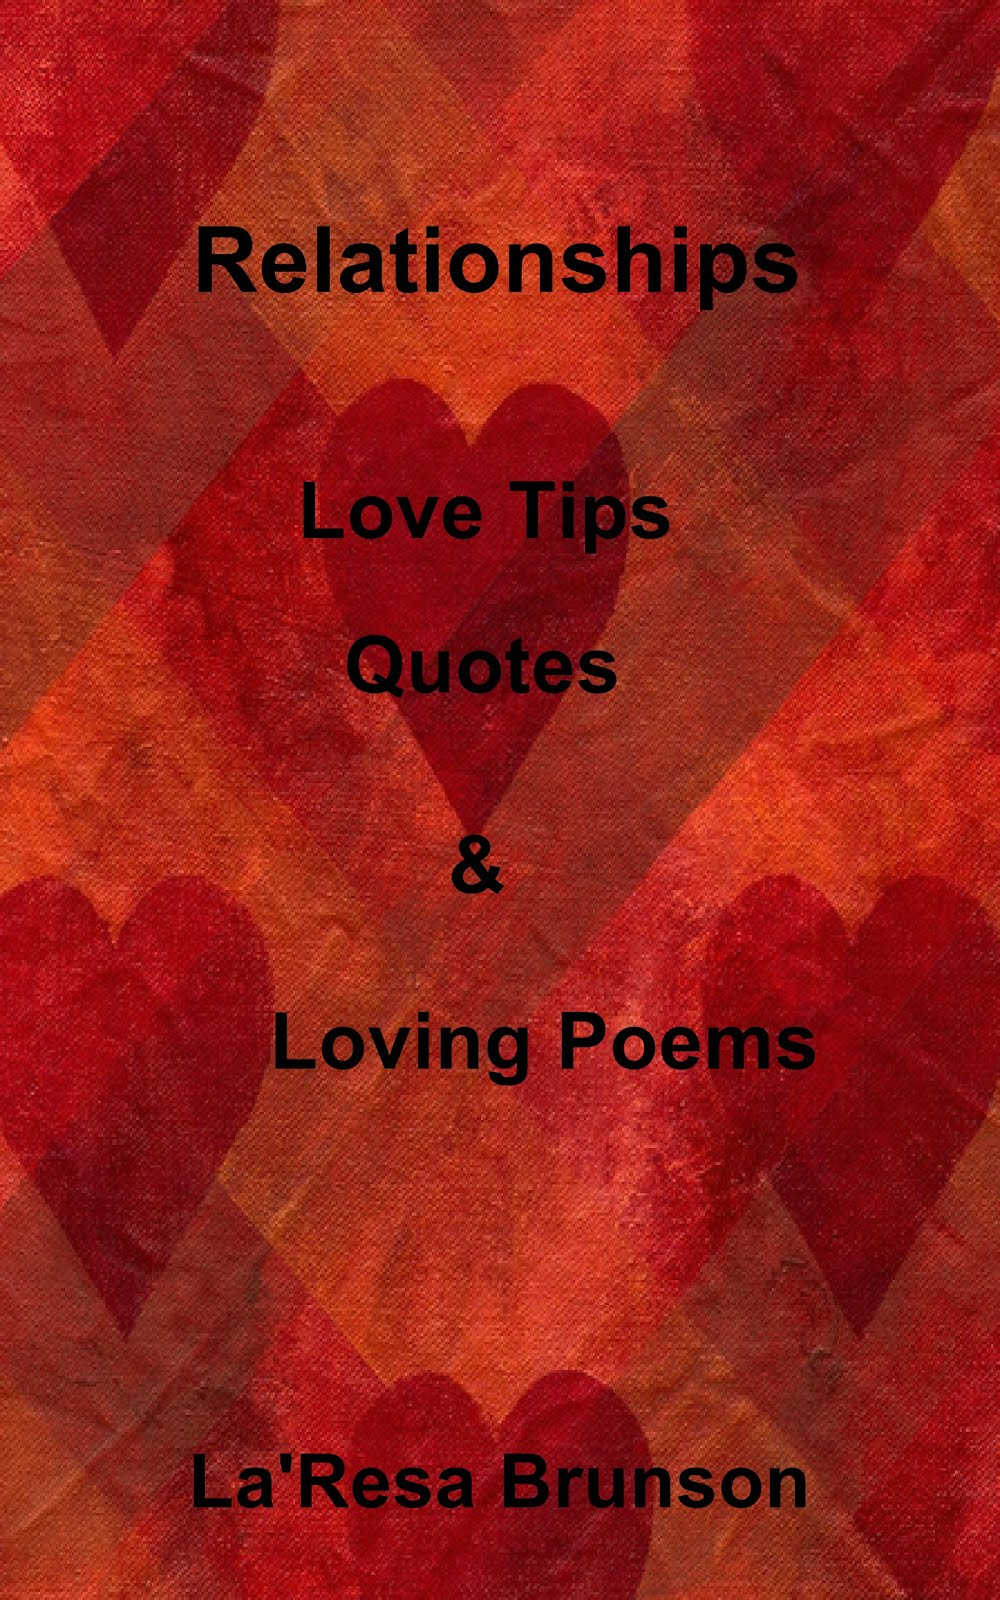 Relationships: Love Tips, Quotes & Loving Poems